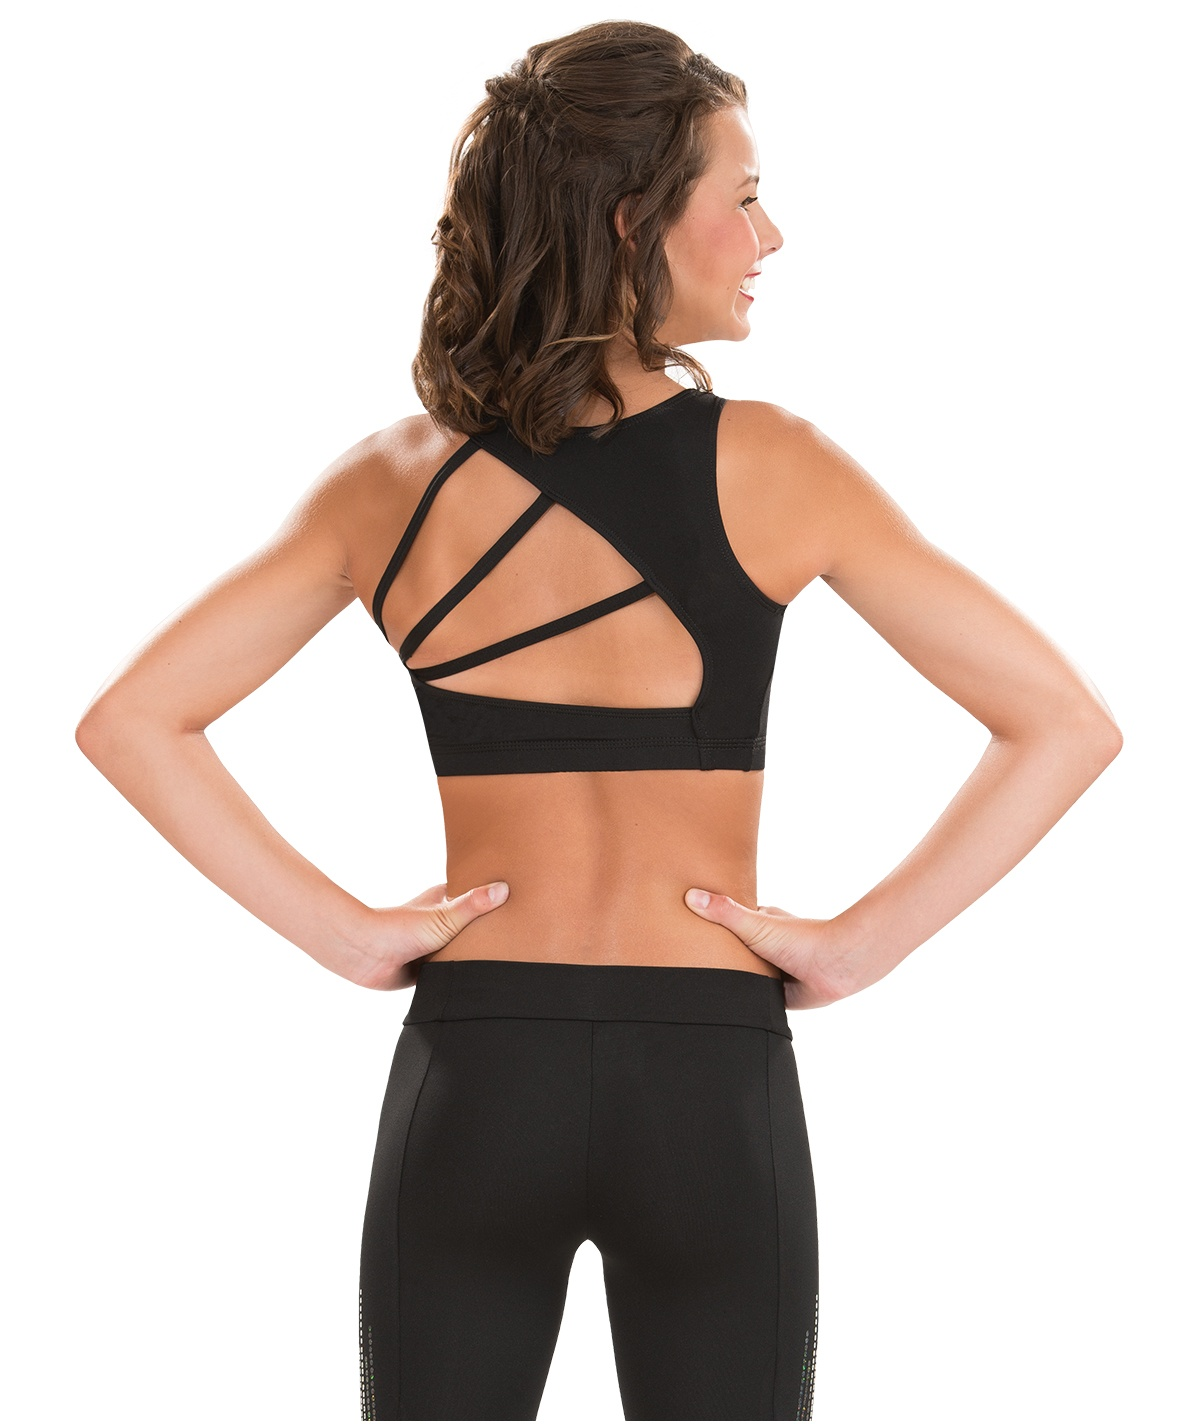 GK All Star Modern Triangle Back Cheer Crop Top